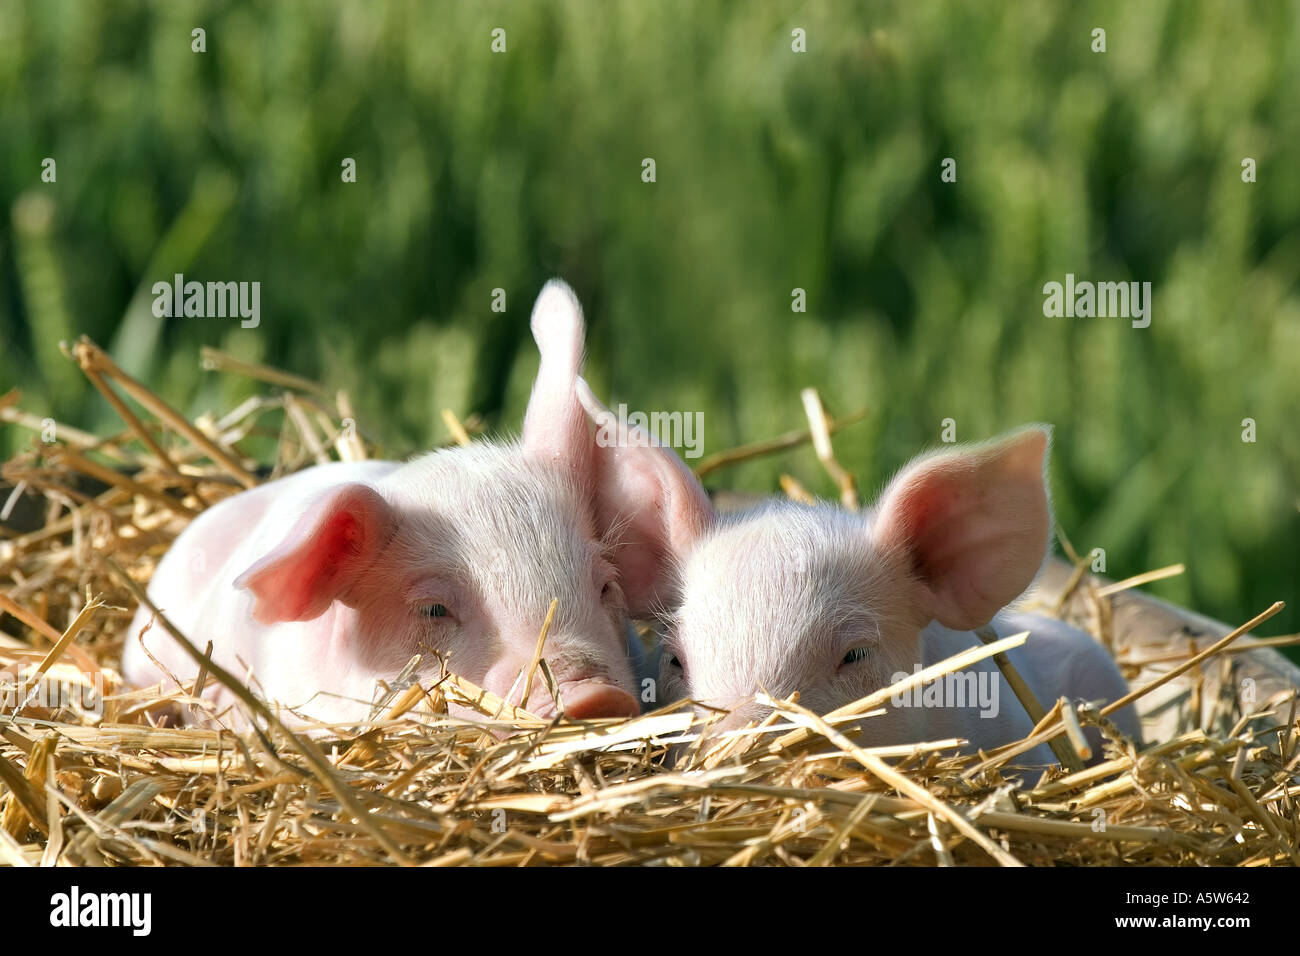 two young piglets in straw - Stock Image